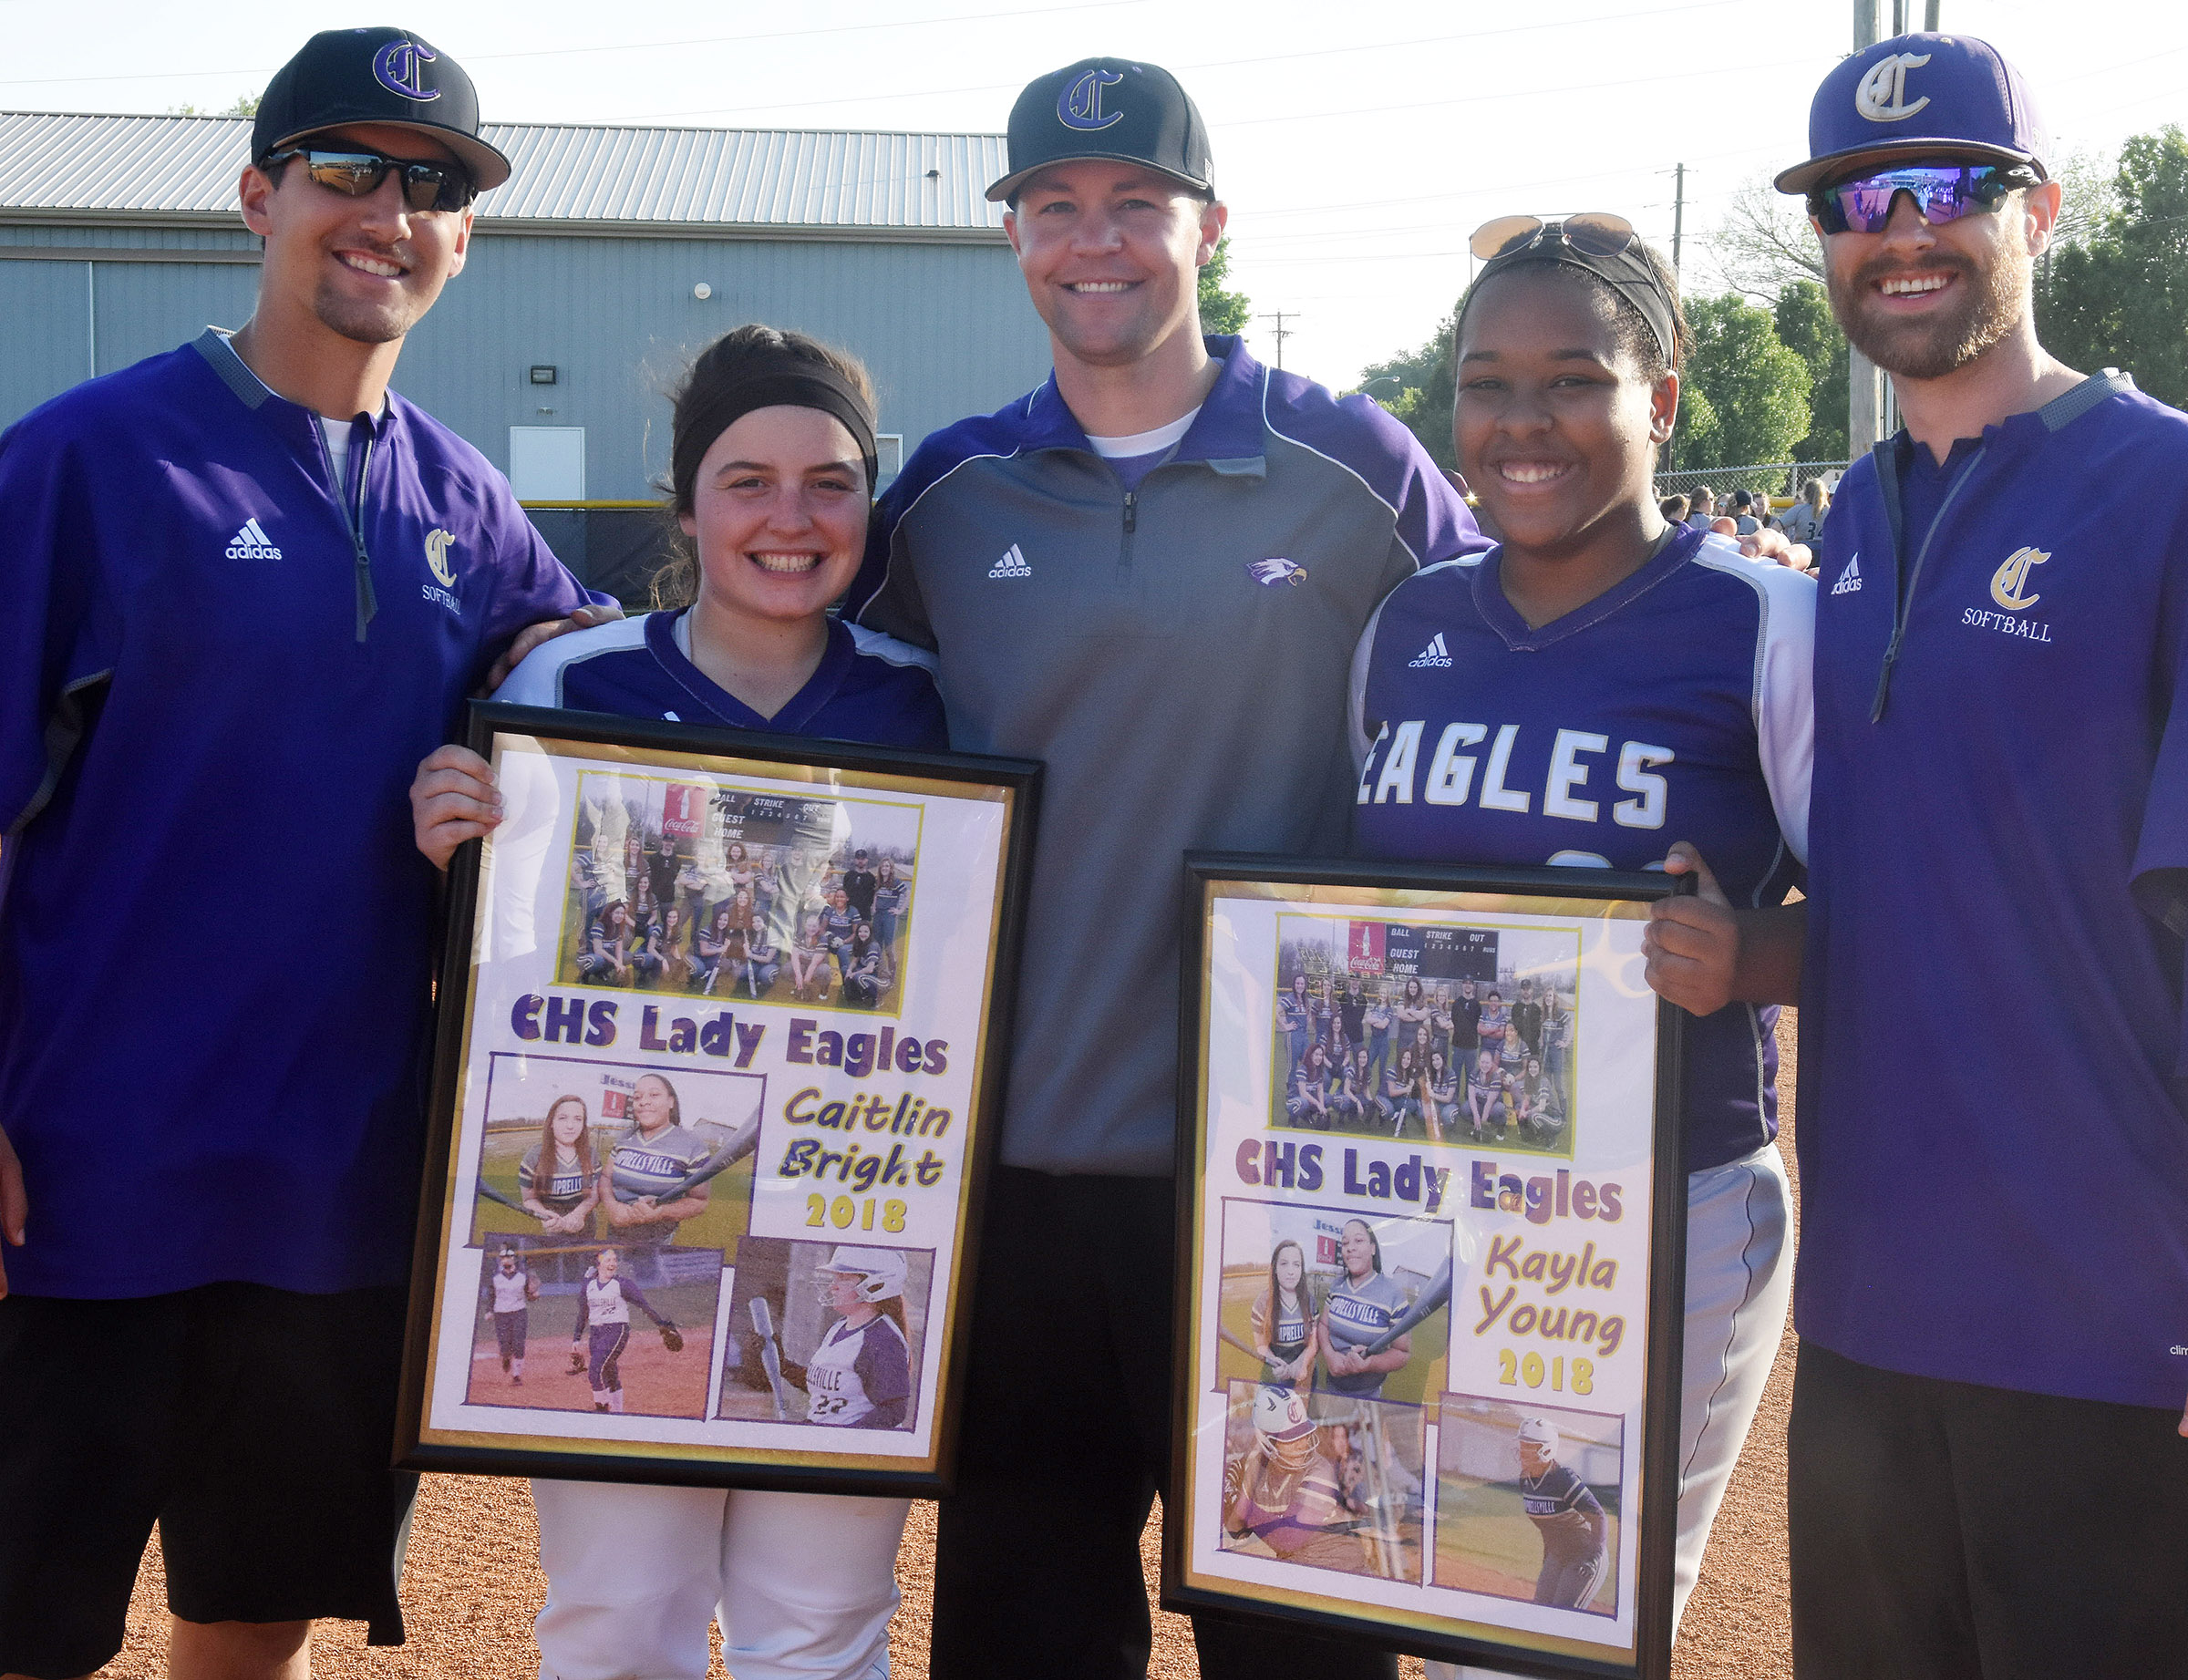 CHS seniors Caitlin Bright, at left, and Kayla Young are honored for their dedication to the Lady Eagles program. They are pictured with, from left, assistant coach Zach Durham, head coach Weston Jones and assistant coach Matthew Schmuck.